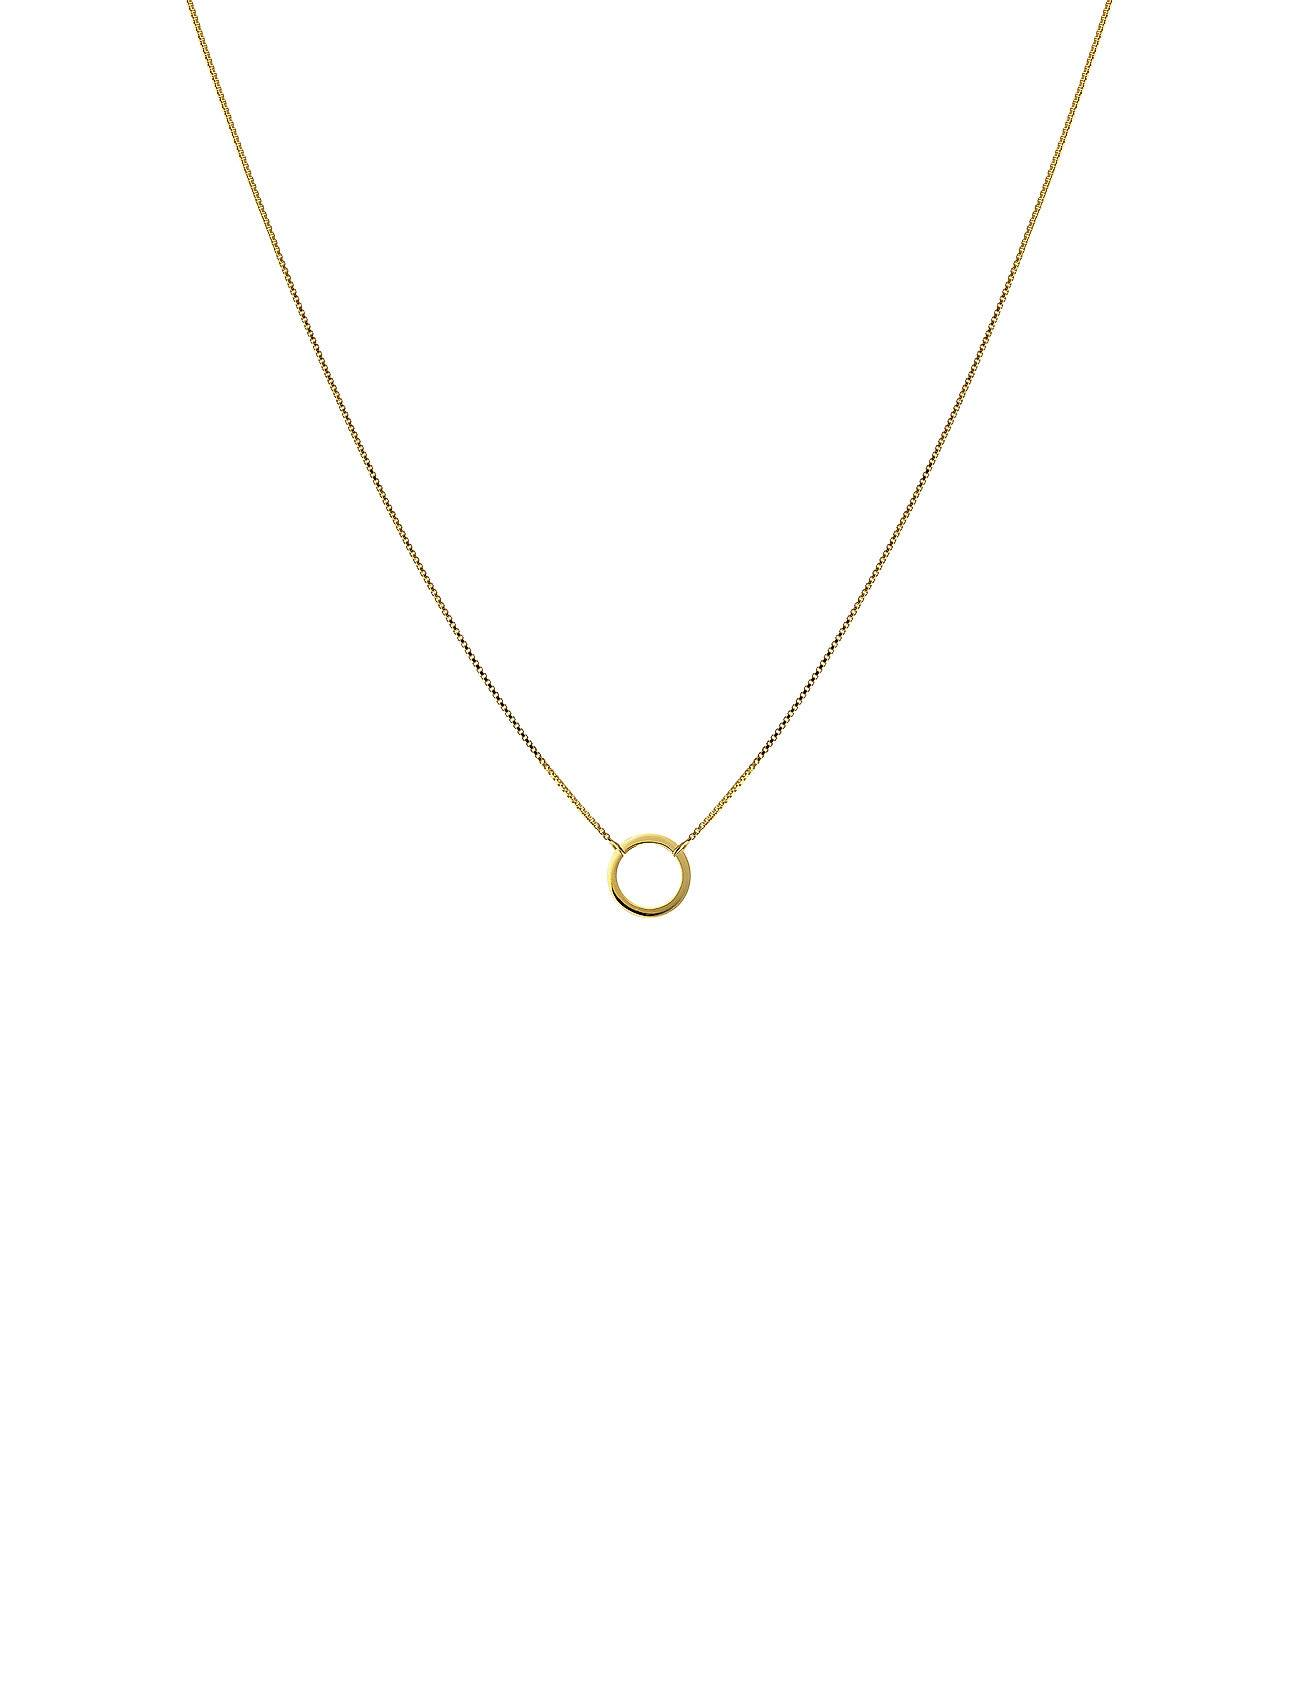 Syster P Minimalistica Ring Necklace Gold Accessories Jewellery Necklaces Dainty Necklaces Kulta Syster P